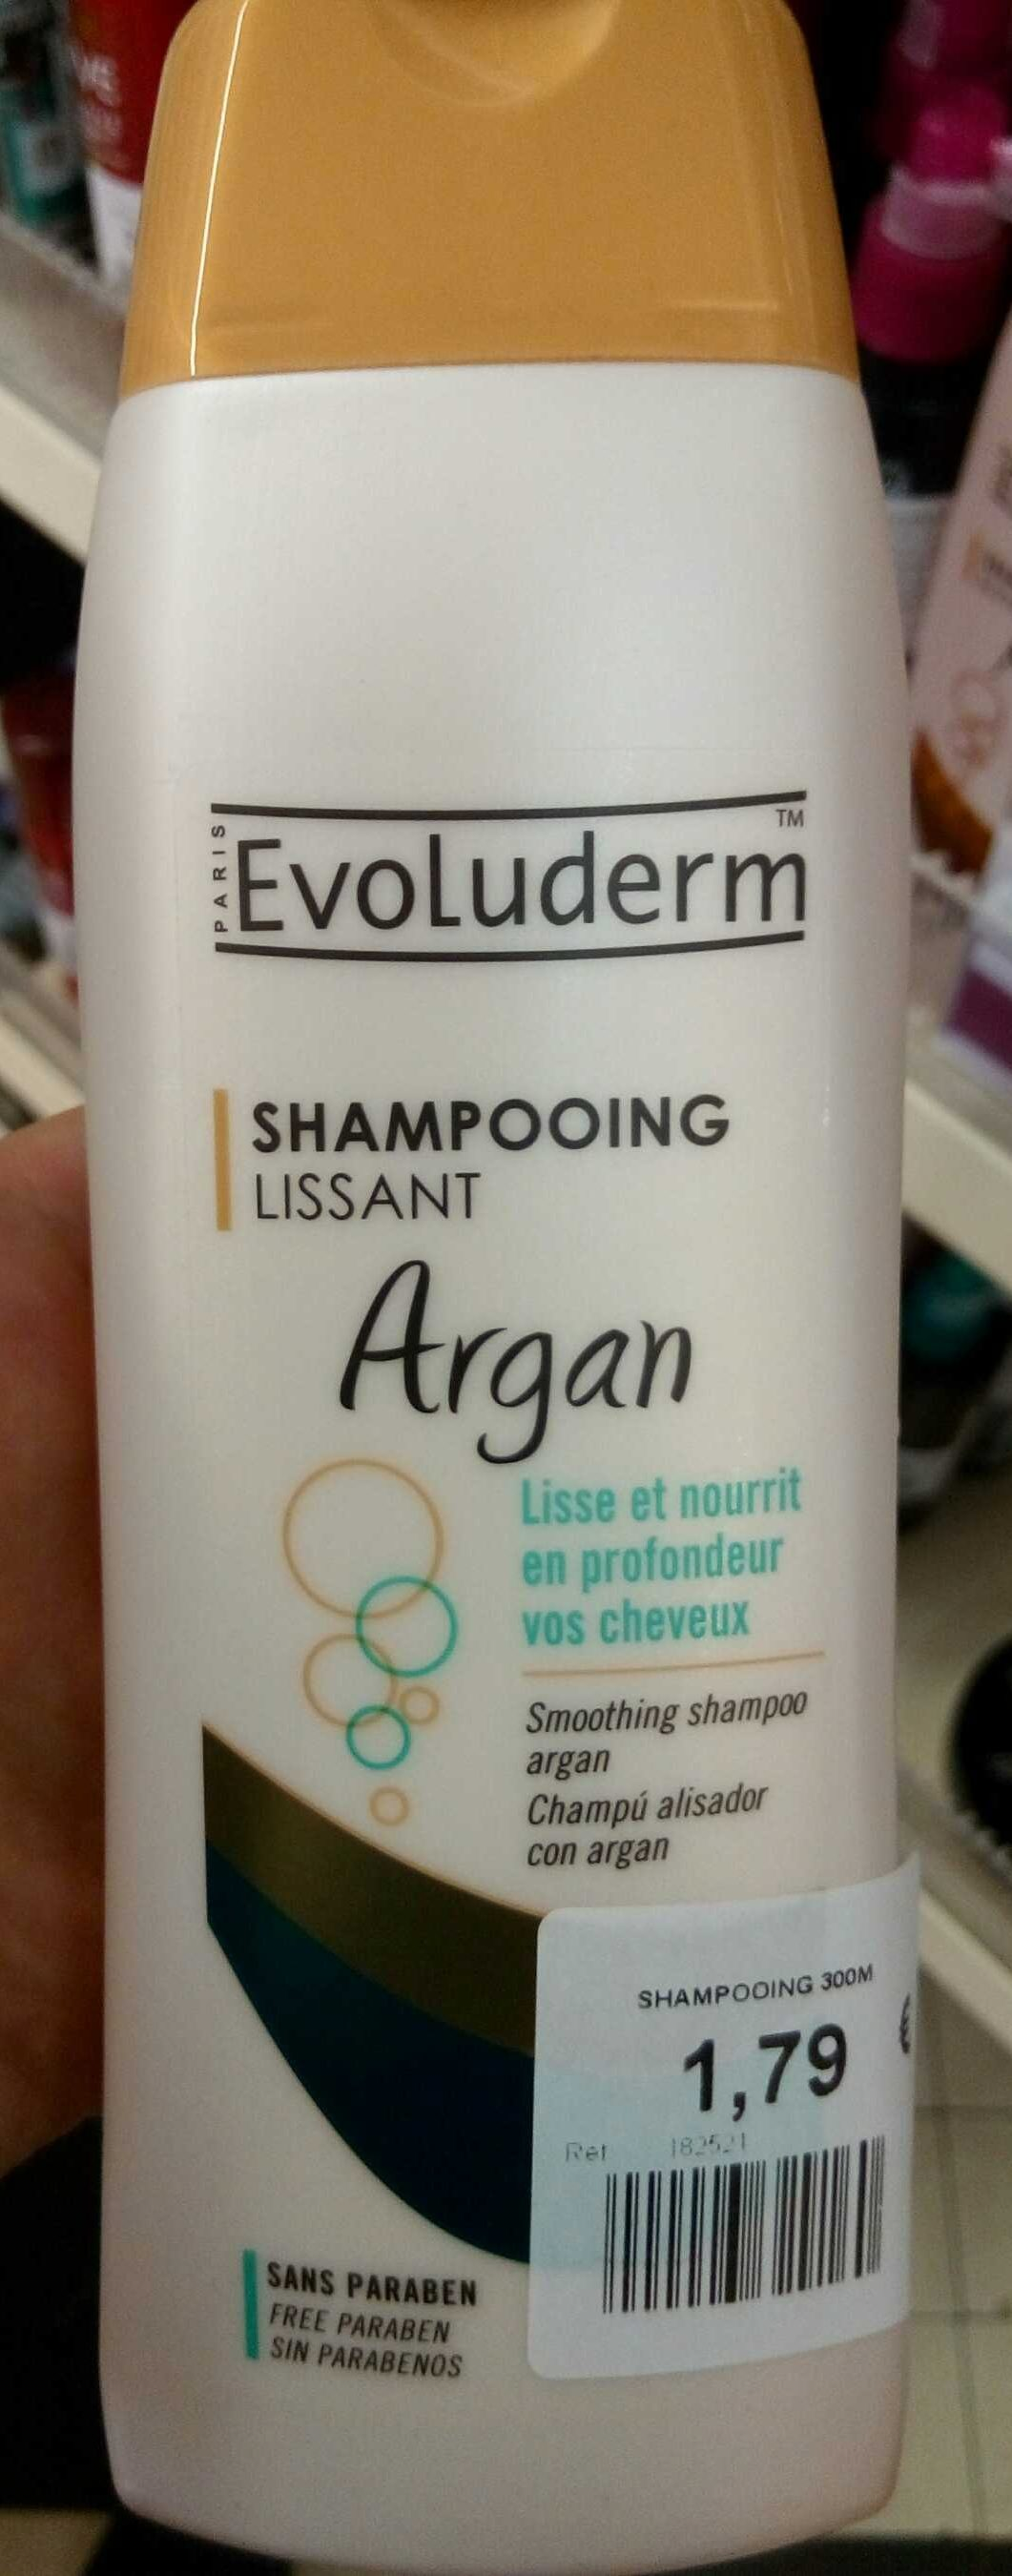 Shampooing lissant Argan - Product - fr